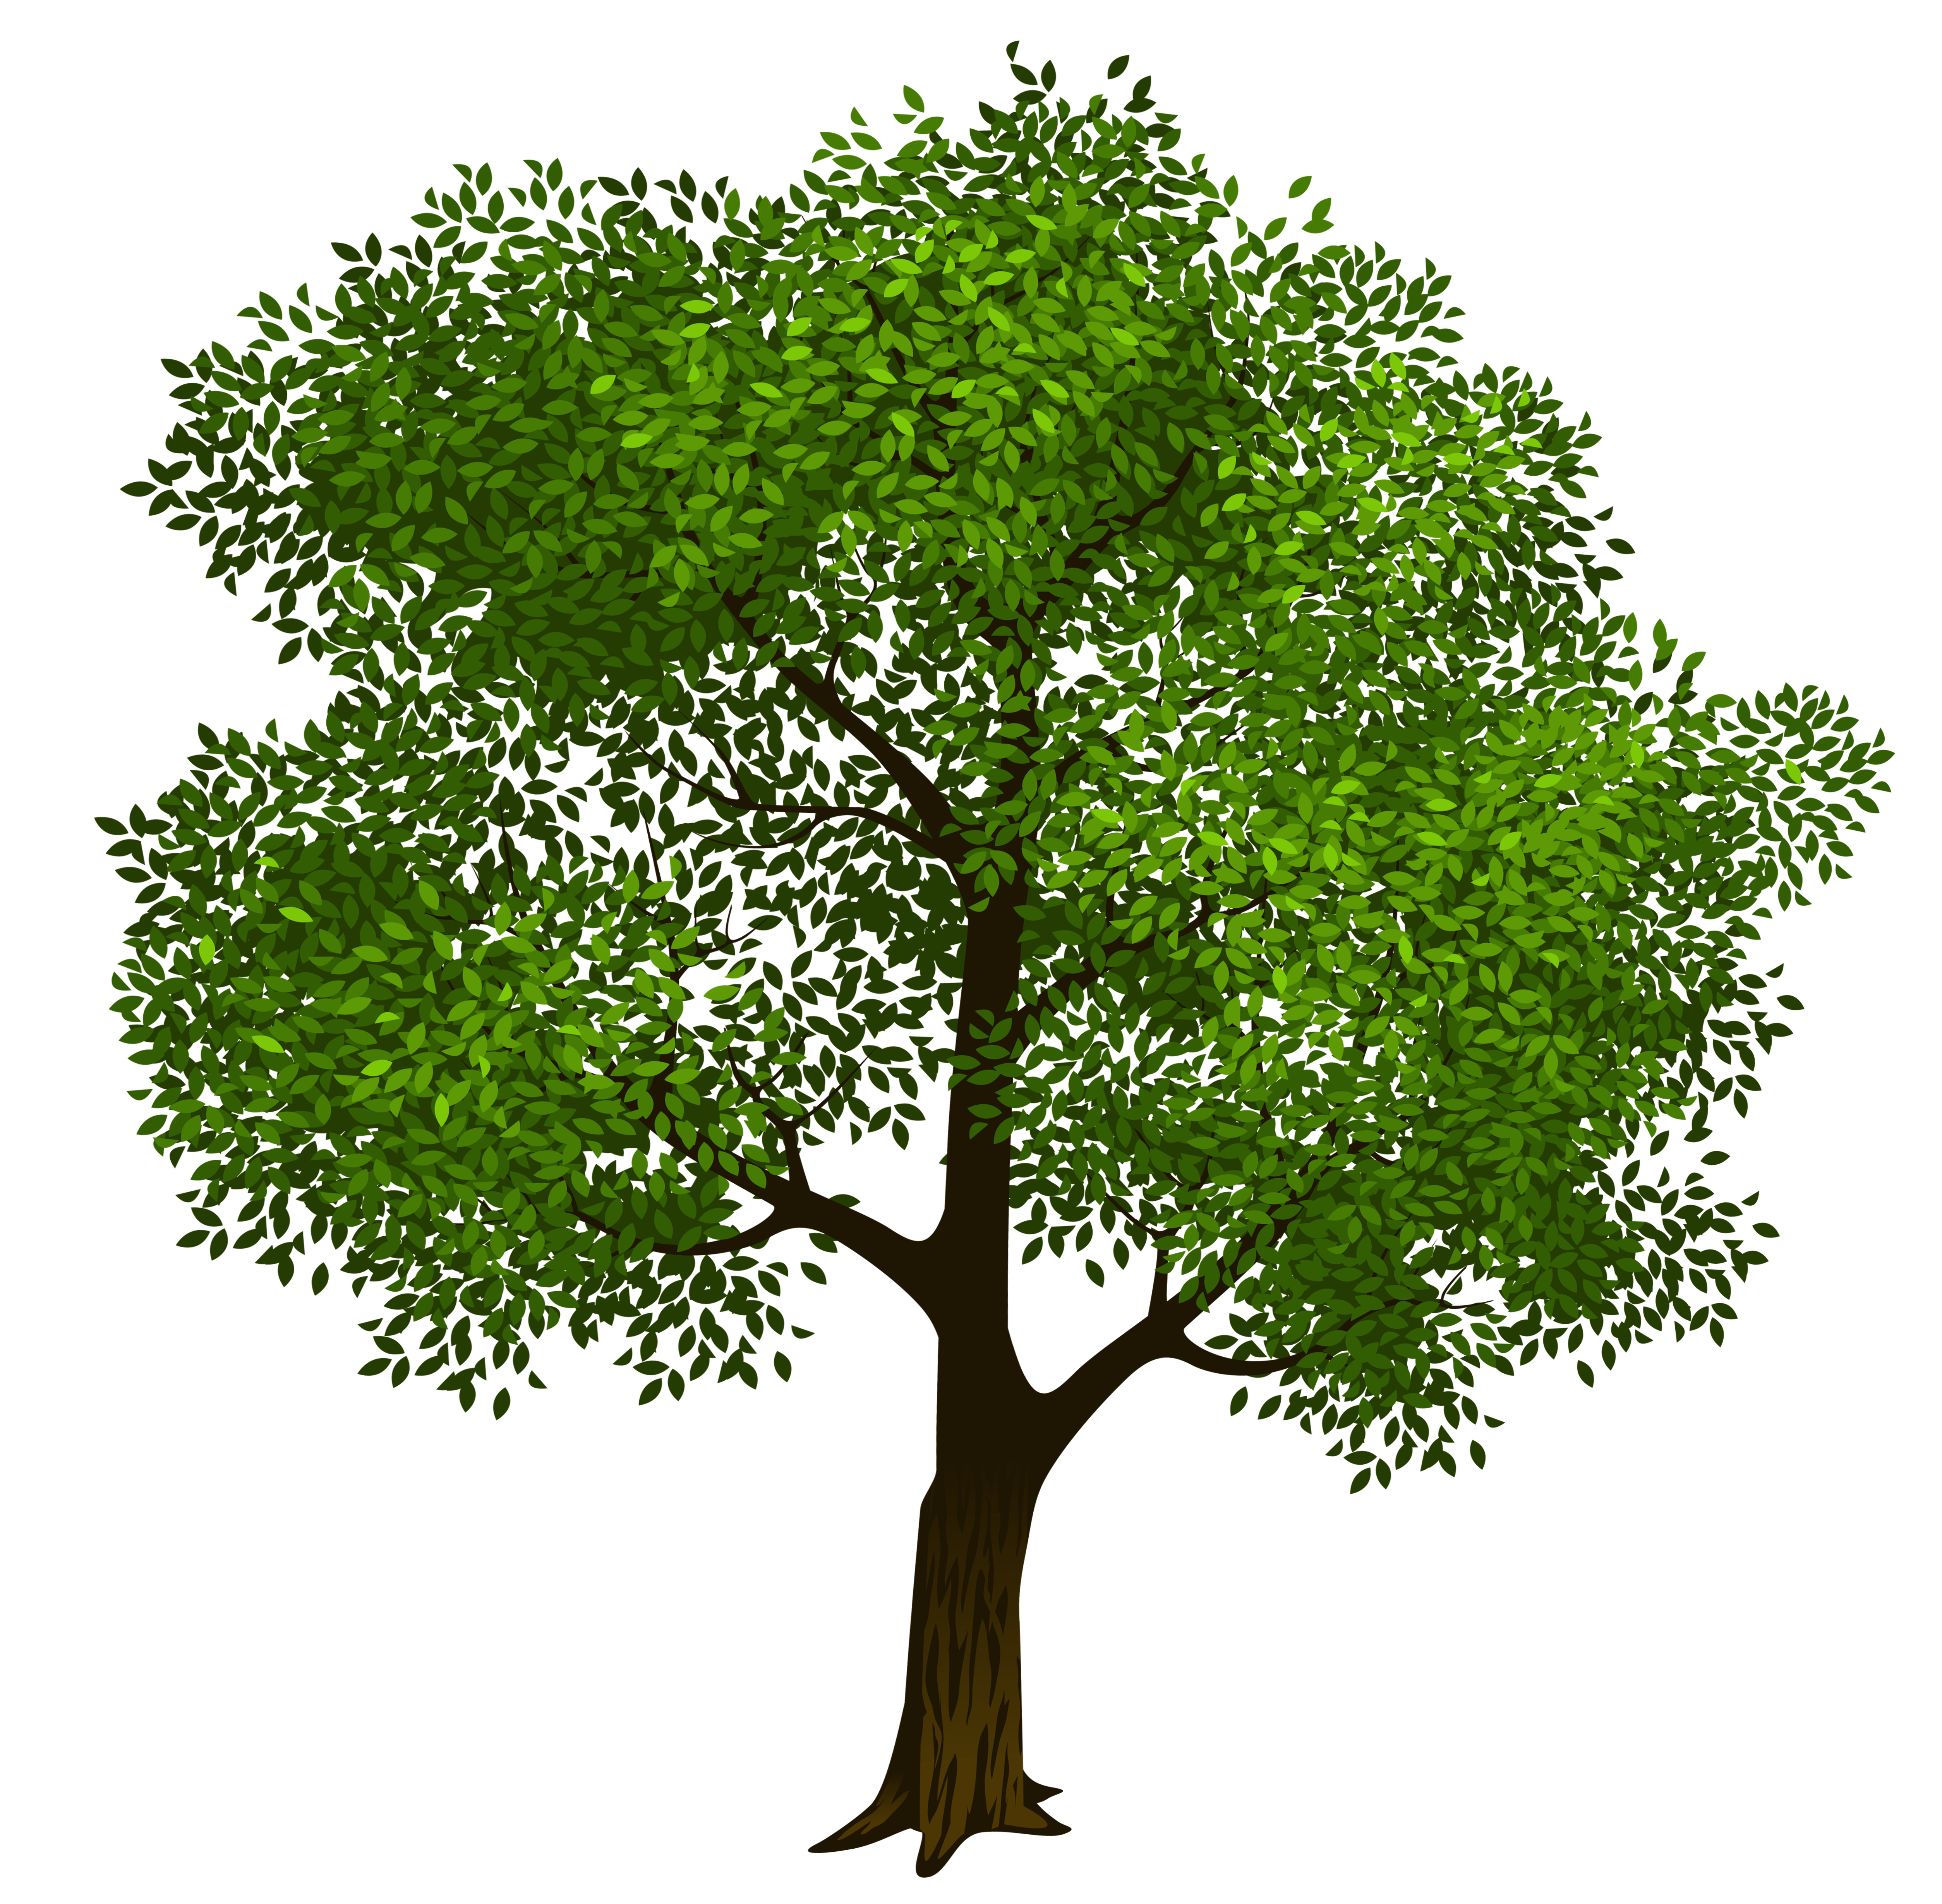 Tree clipart summer. Unique with circles for